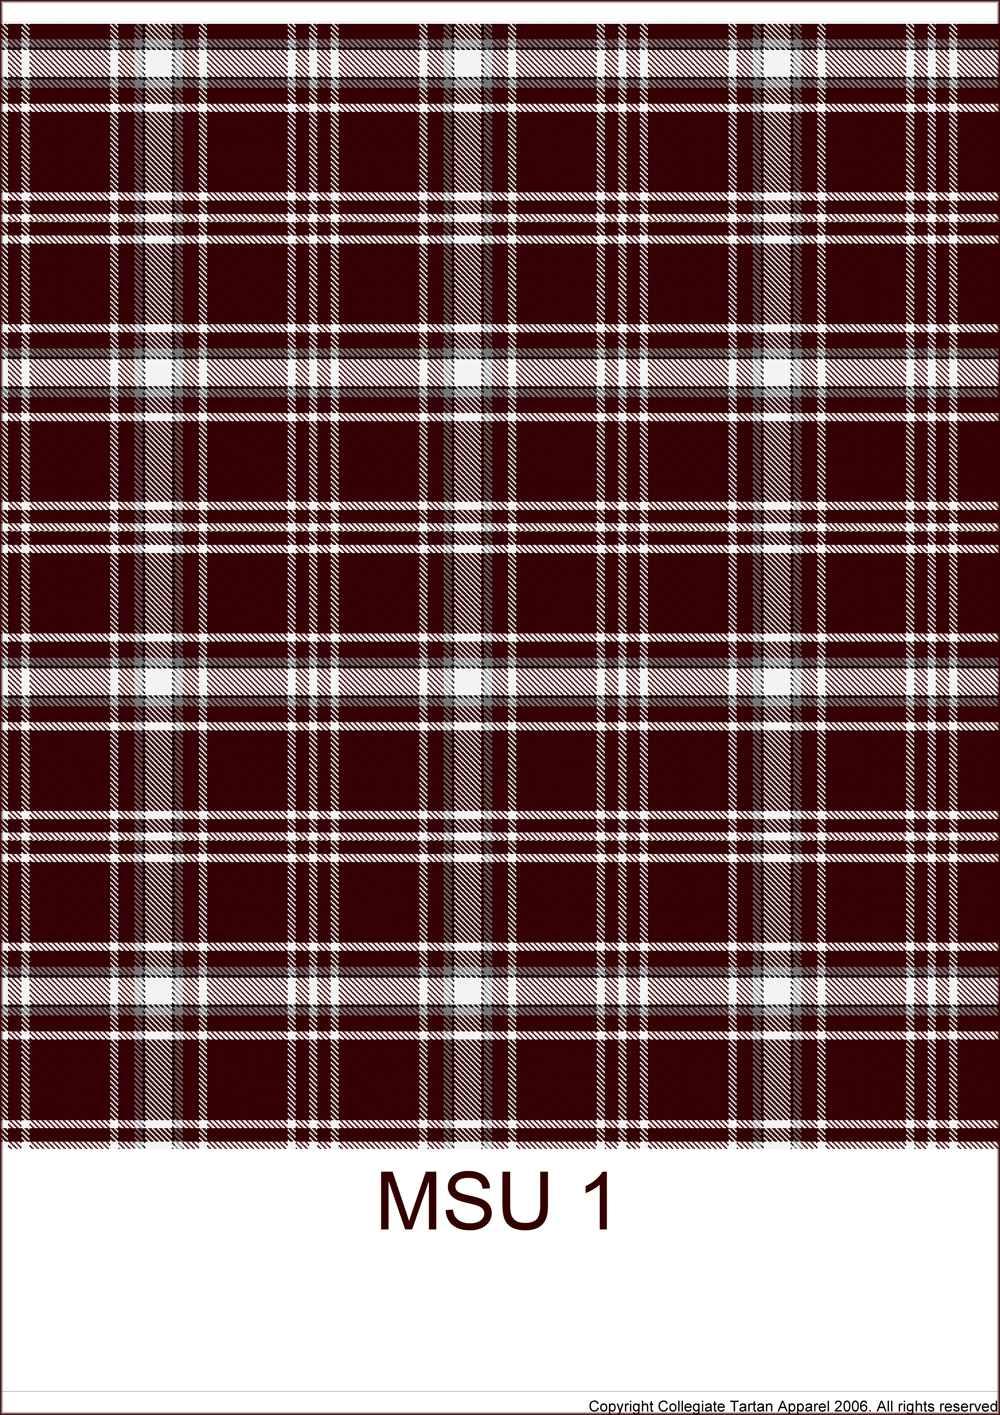 Vote for Missouri State's official tartan